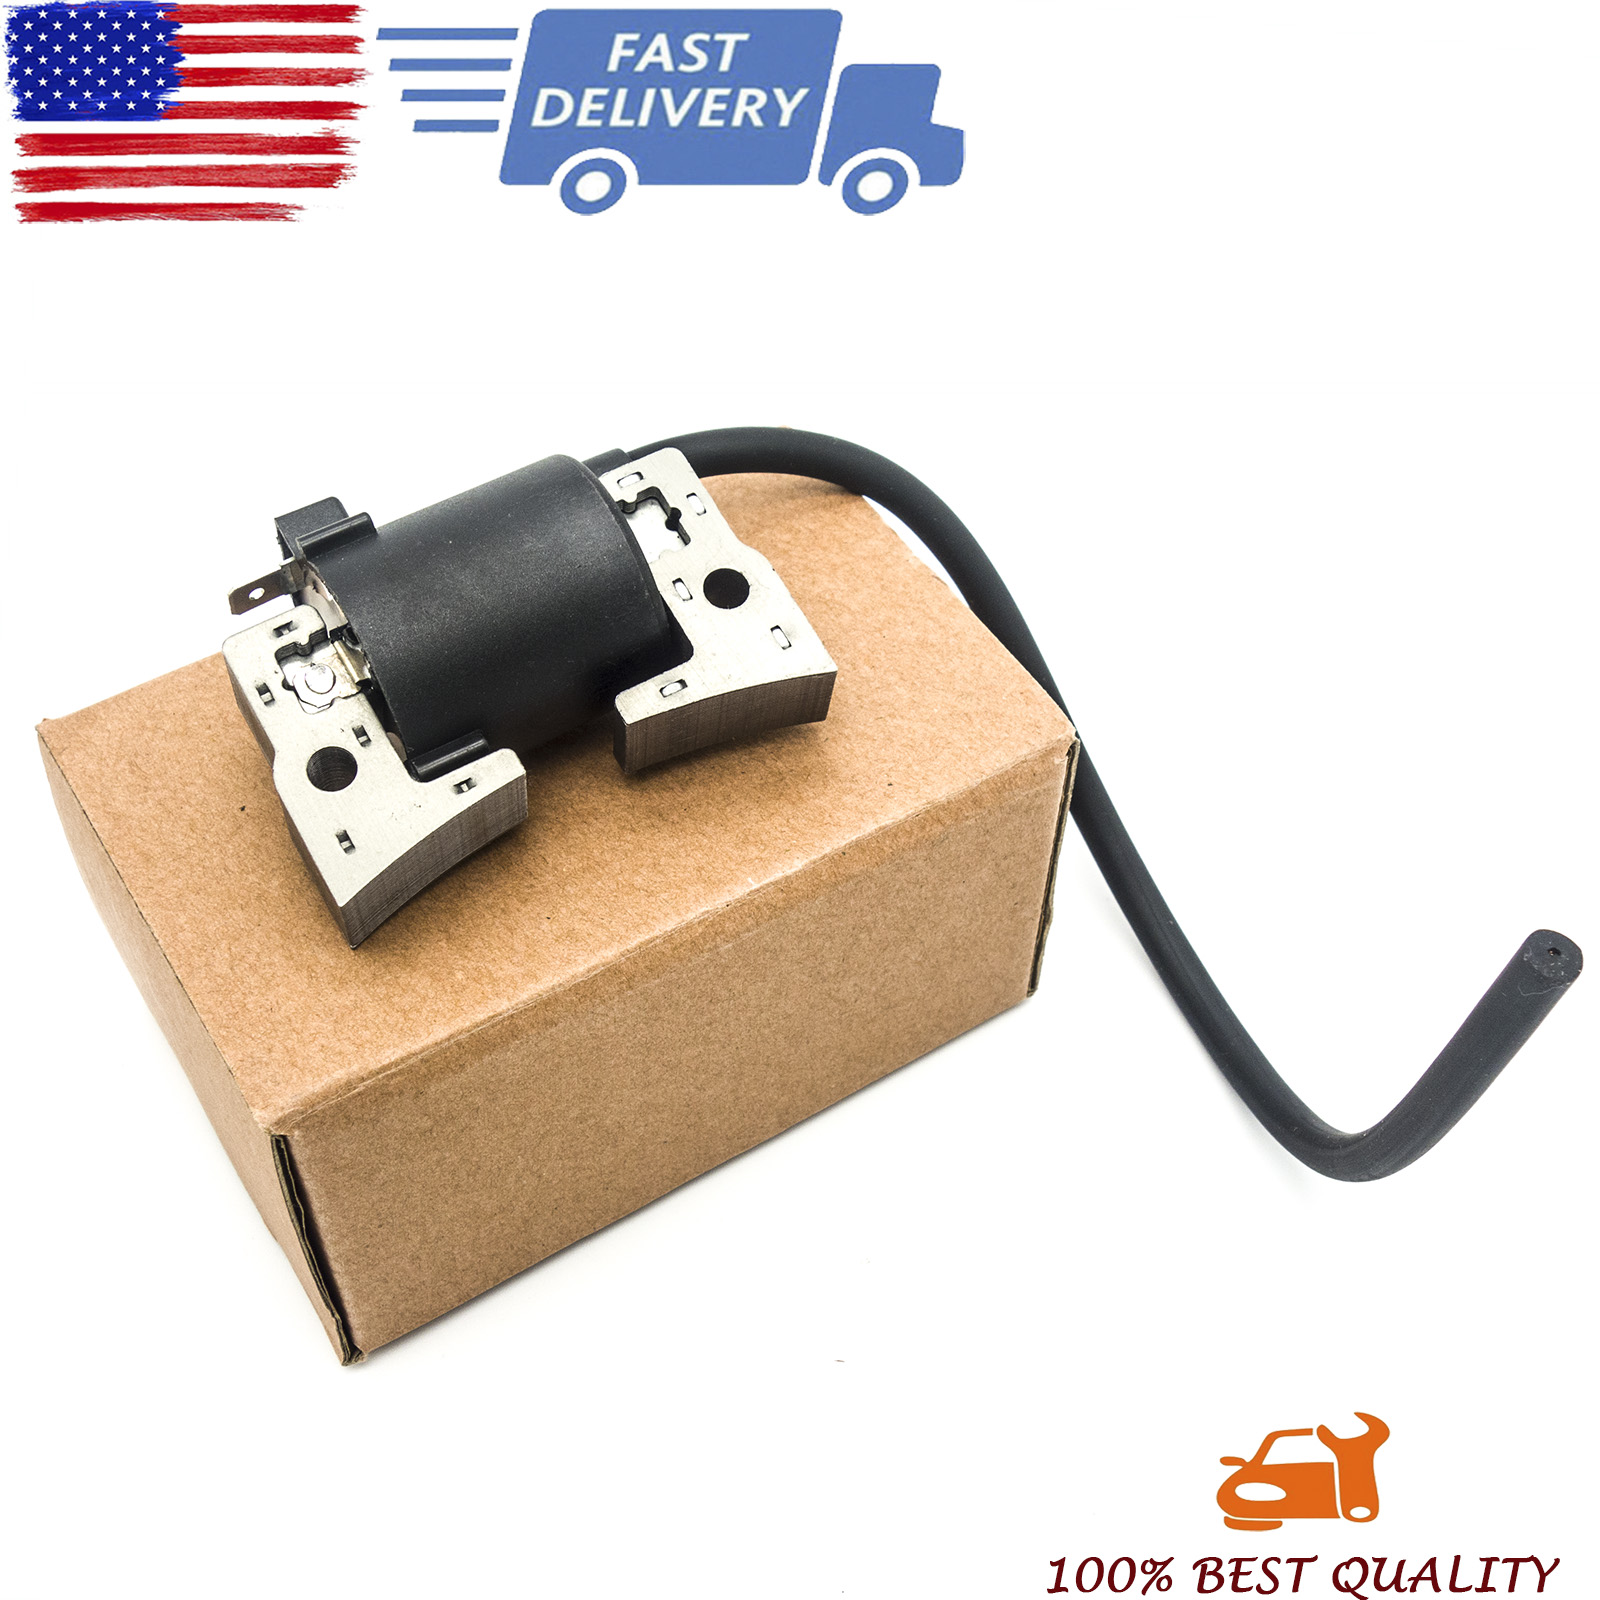 Details about Ignition Coil For Club Car 92-96 DS FE290 FE350 Gas Golf Cart  Ignitor 1016492 US